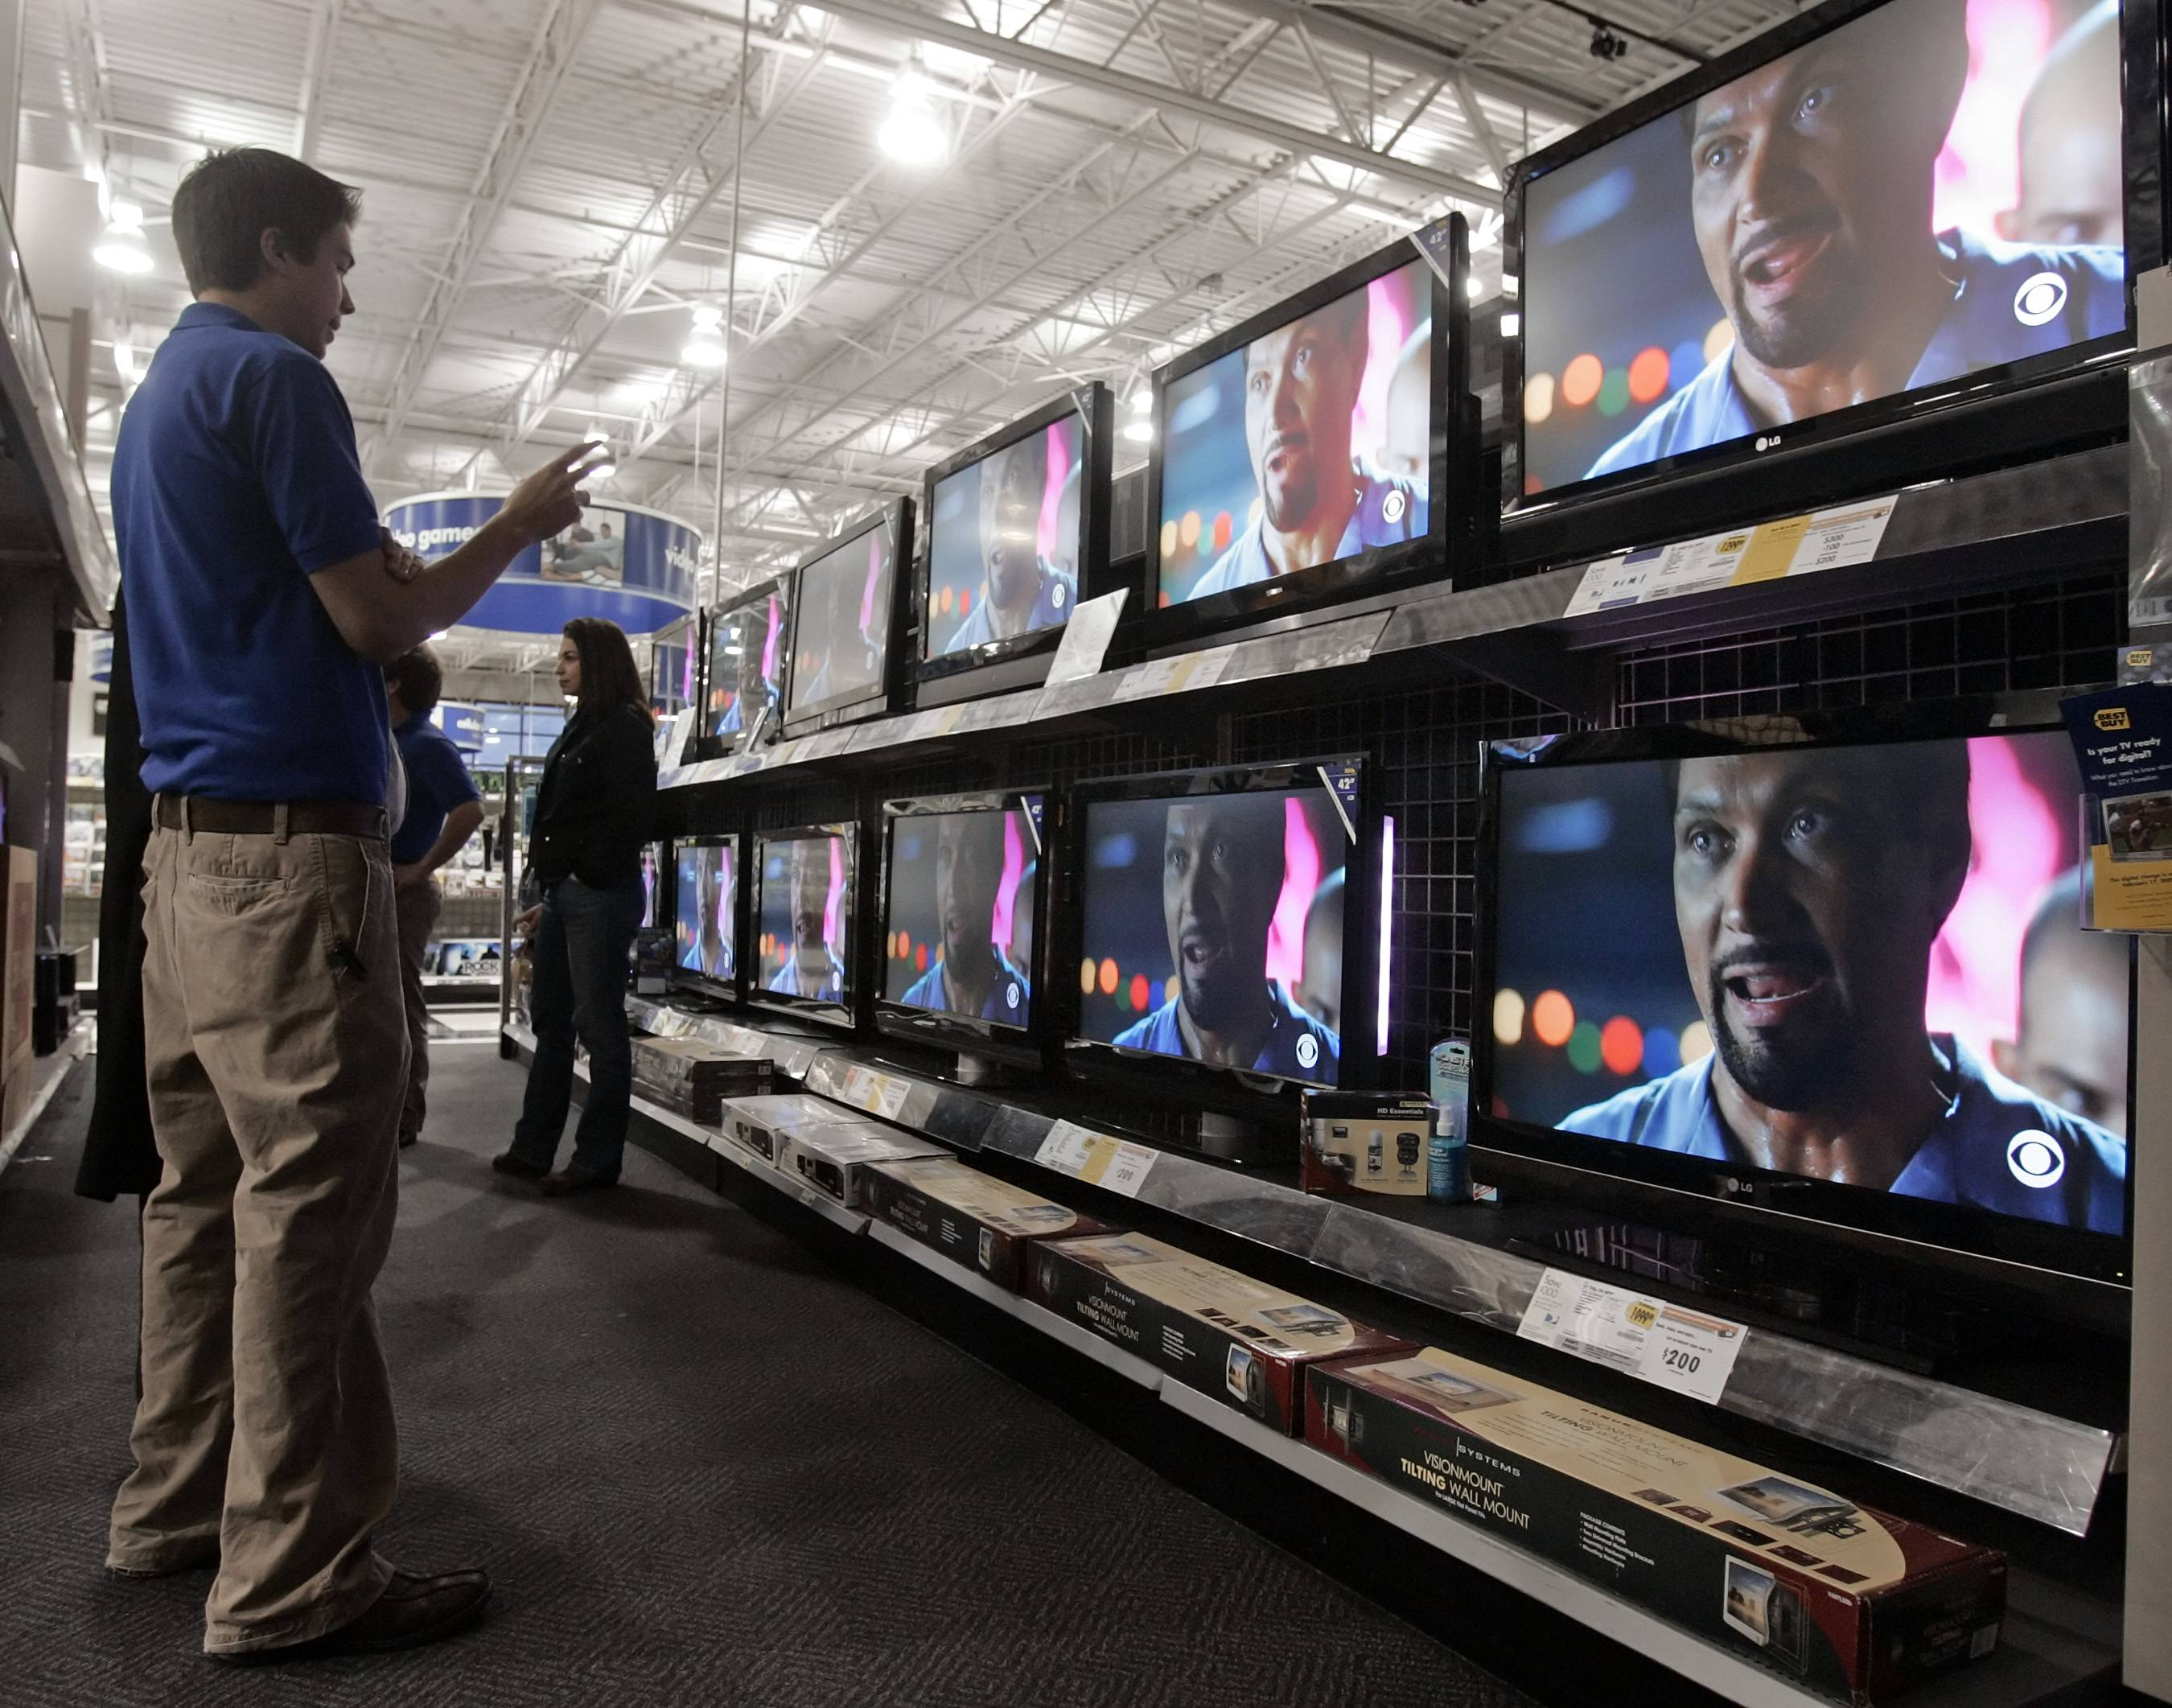 A salesperson helps a customer with information on big screen televisions at a Best Buy store in Nashville, Tenn. Offers of extended warranties or service contracts are becoming the norm, whether you buy a big-ticket item like a car or kitchen appliance or a less expensive one like a television or smartphone.